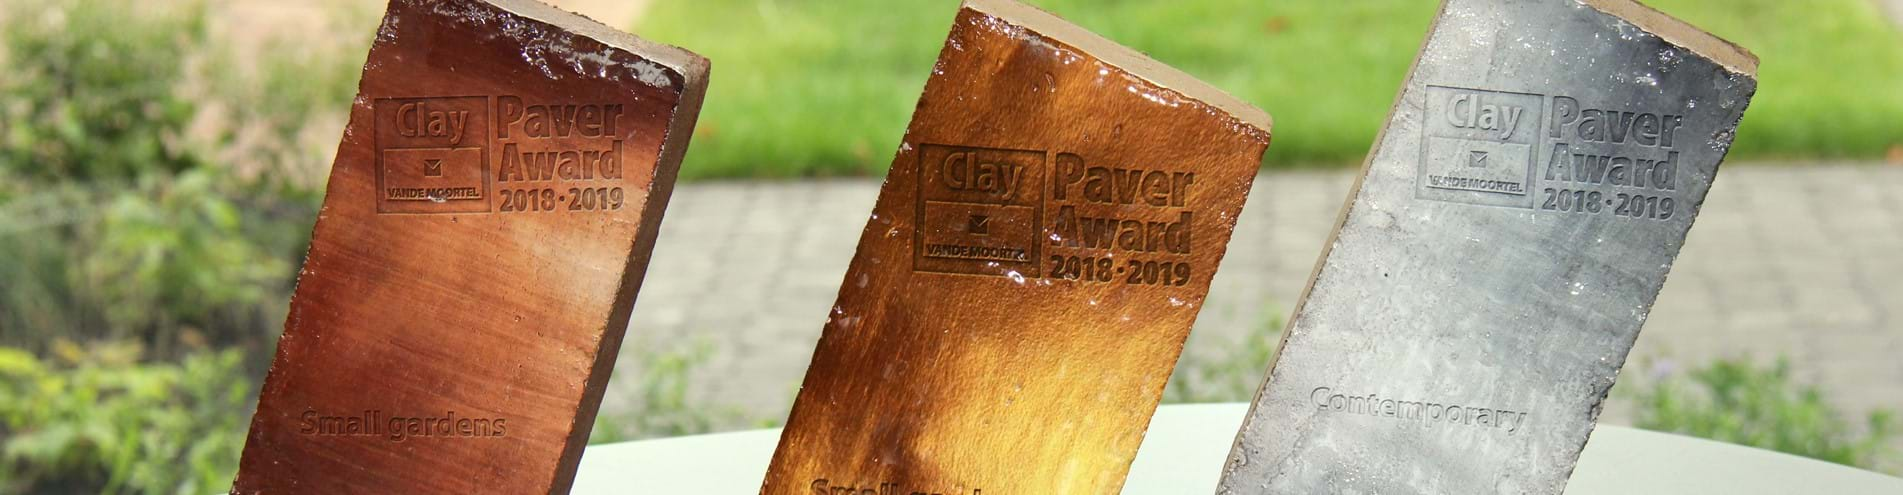 Enter the Clay Paver Awards 2020 - 2021